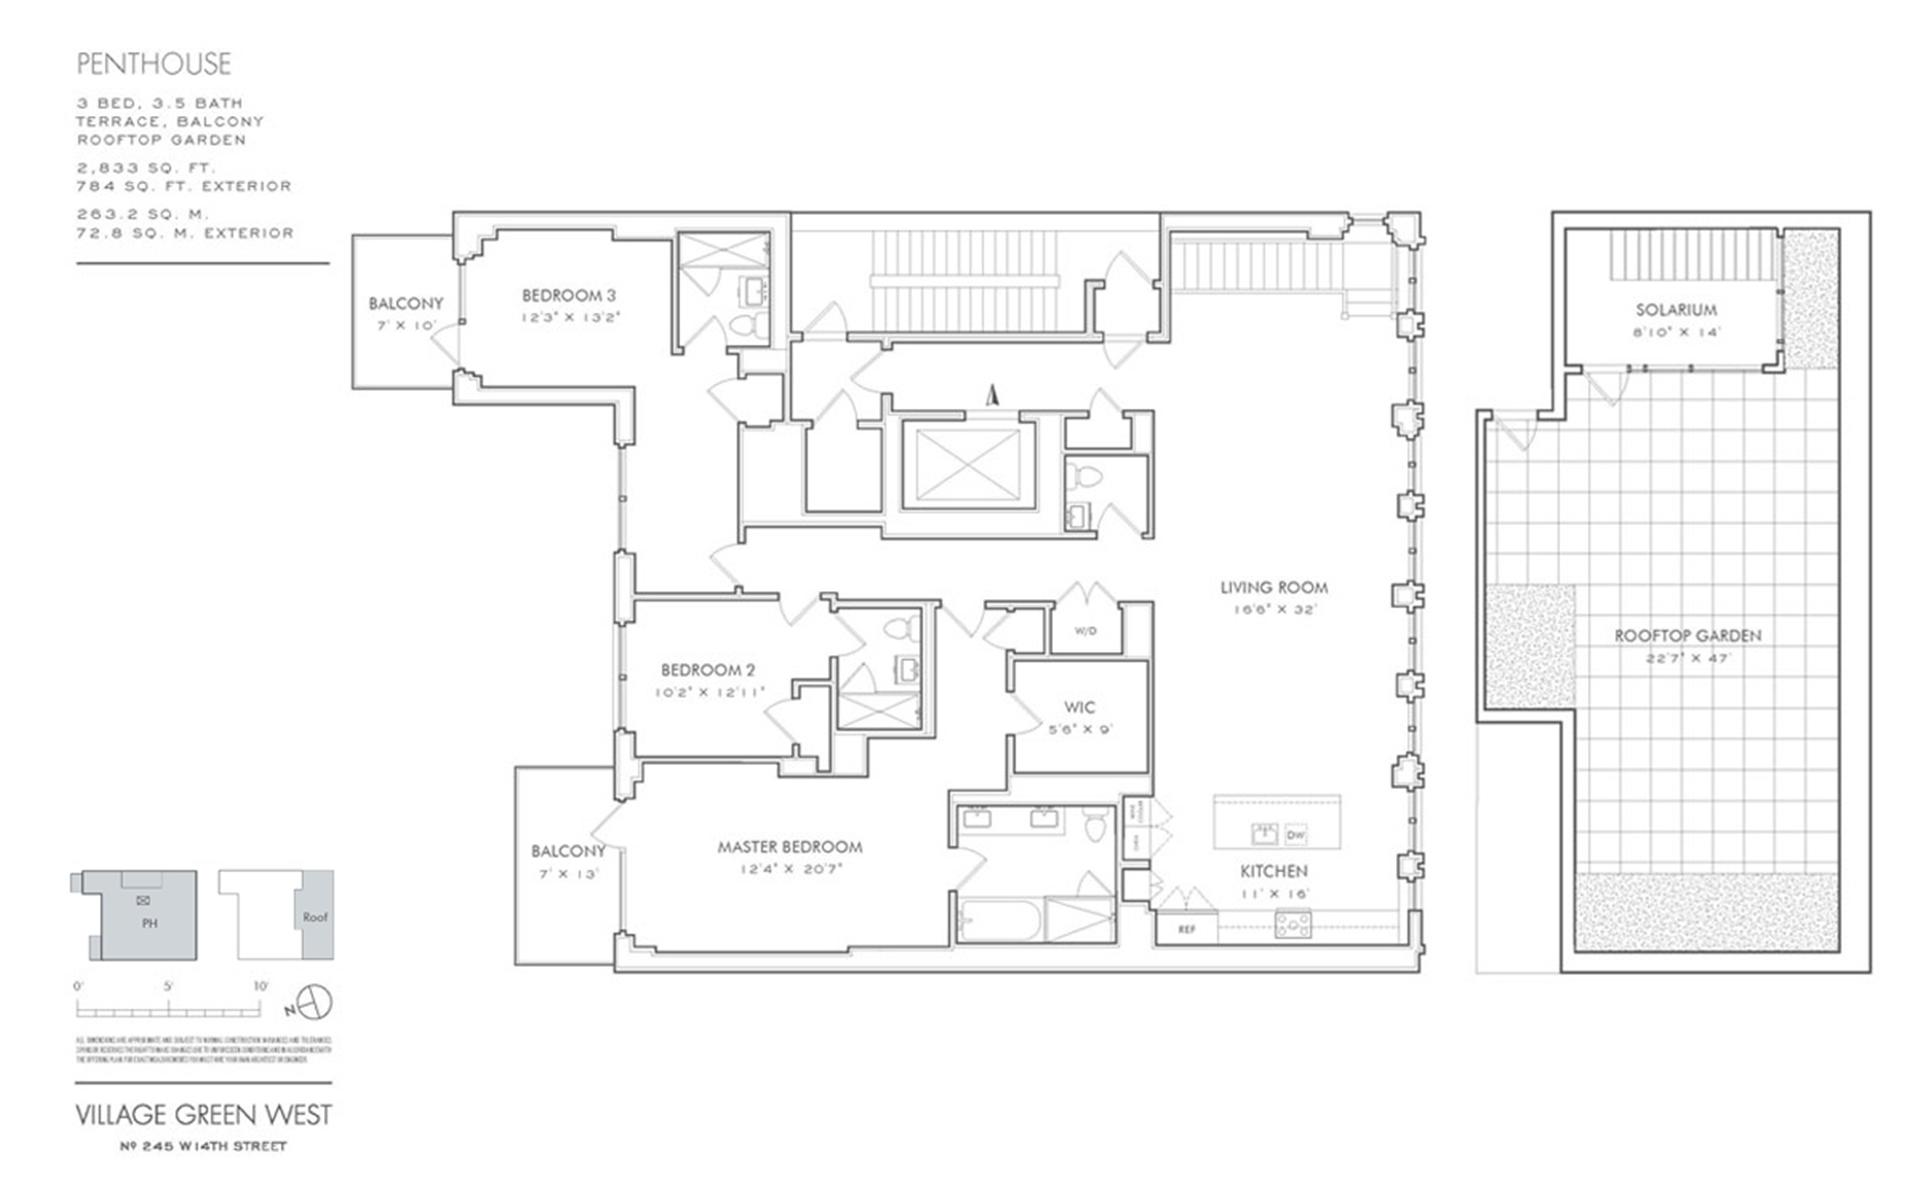 Floor plan of Village Green West, 245 West 14th St, PH - Chelsea, New York